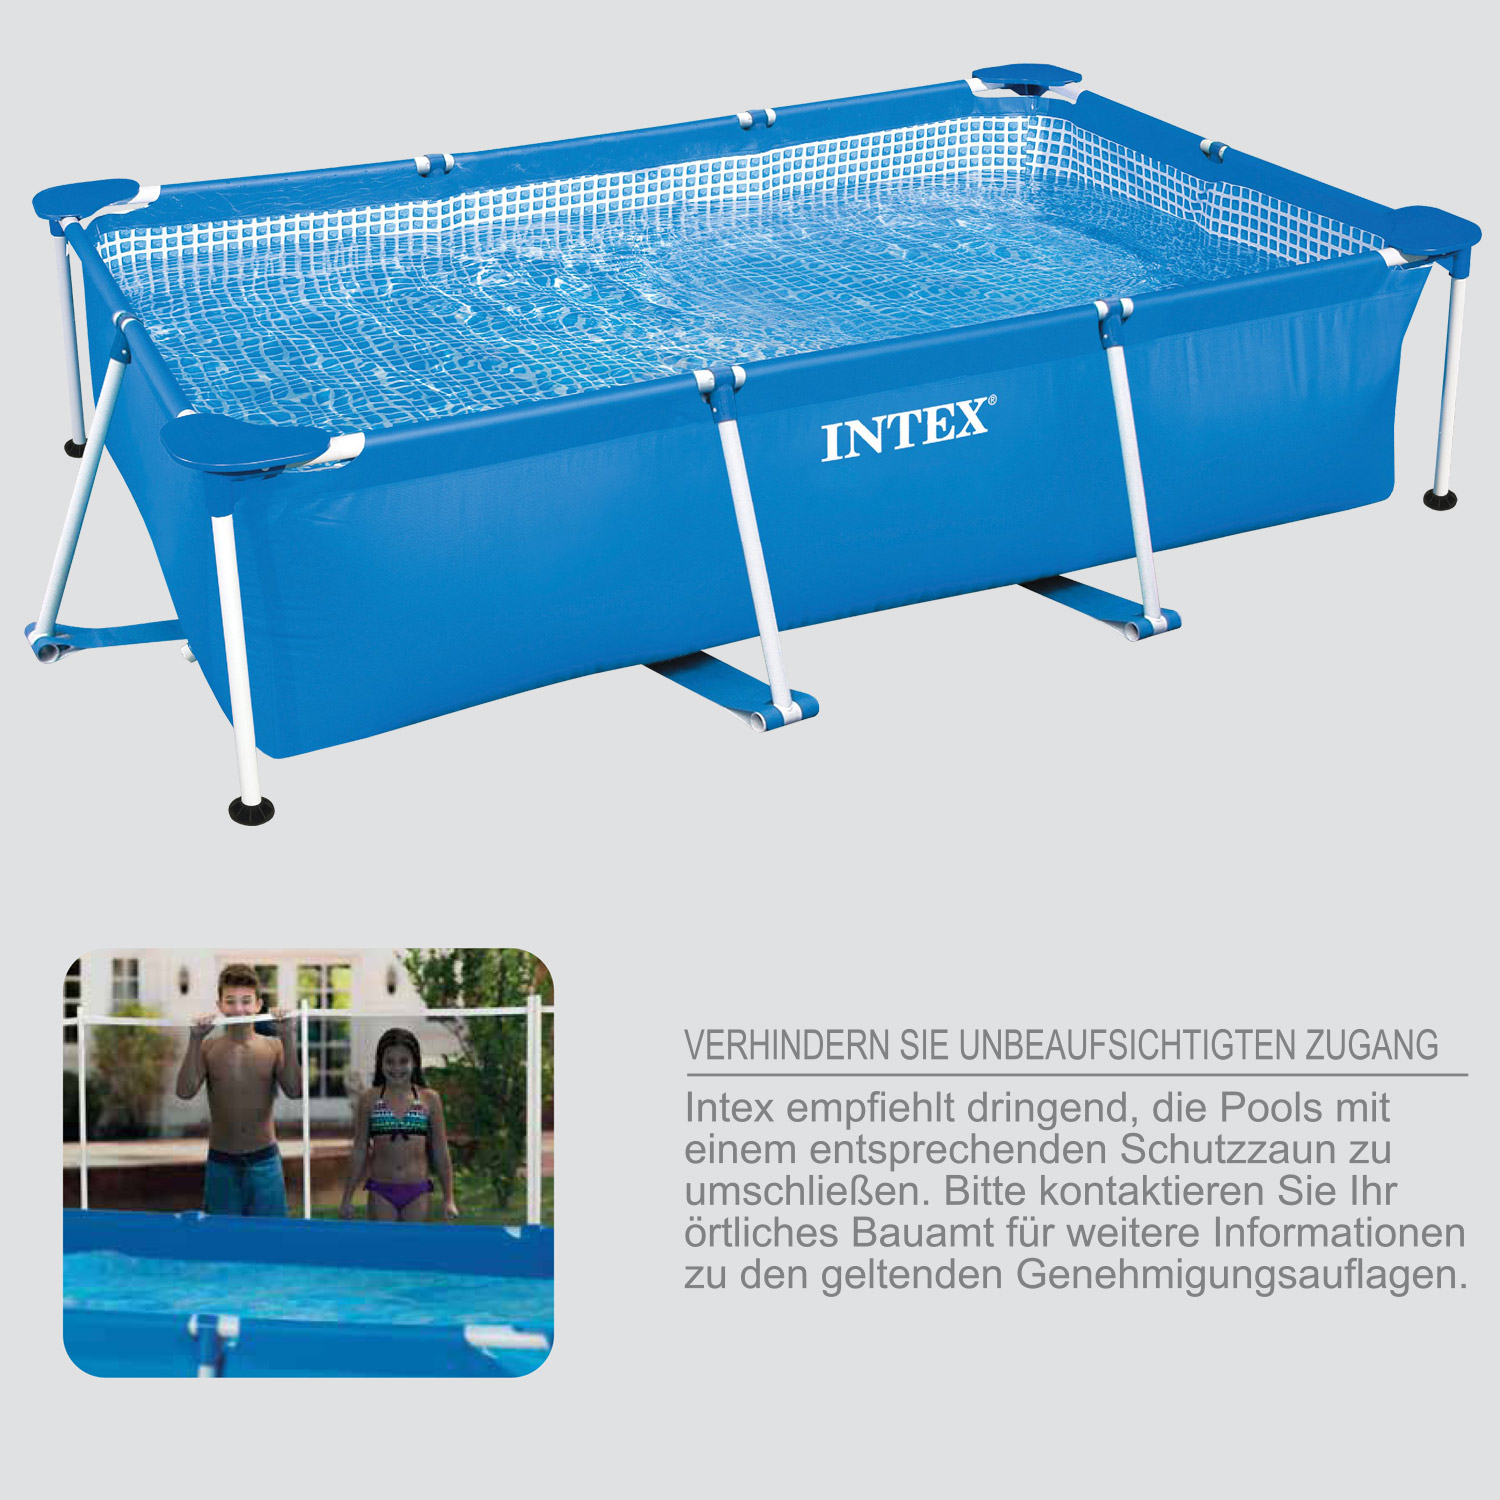 intex 300x200x75 cm swimming pool mit sandfilter schwimmbecken stahlwandbecken ebay. Black Bedroom Furniture Sets. Home Design Ideas